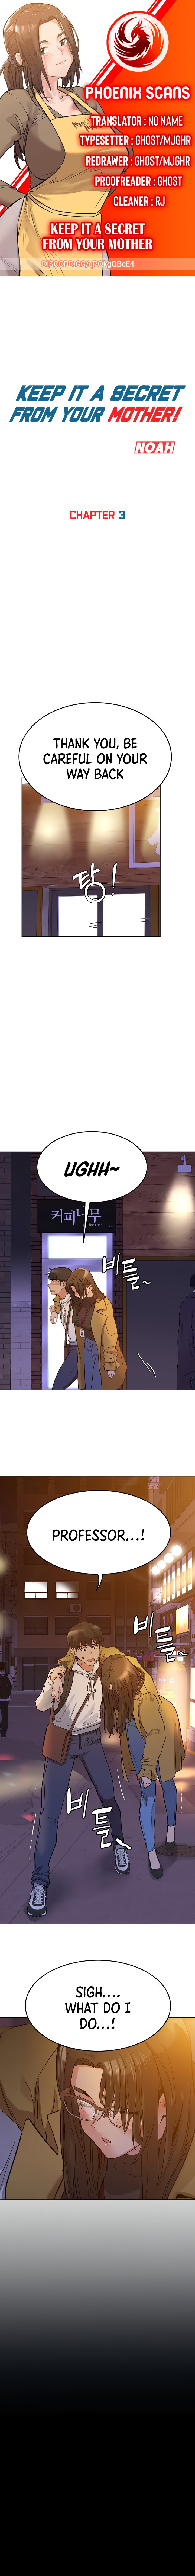 Keep it a secret from your mother Chapter 3 - Manhwa18.com